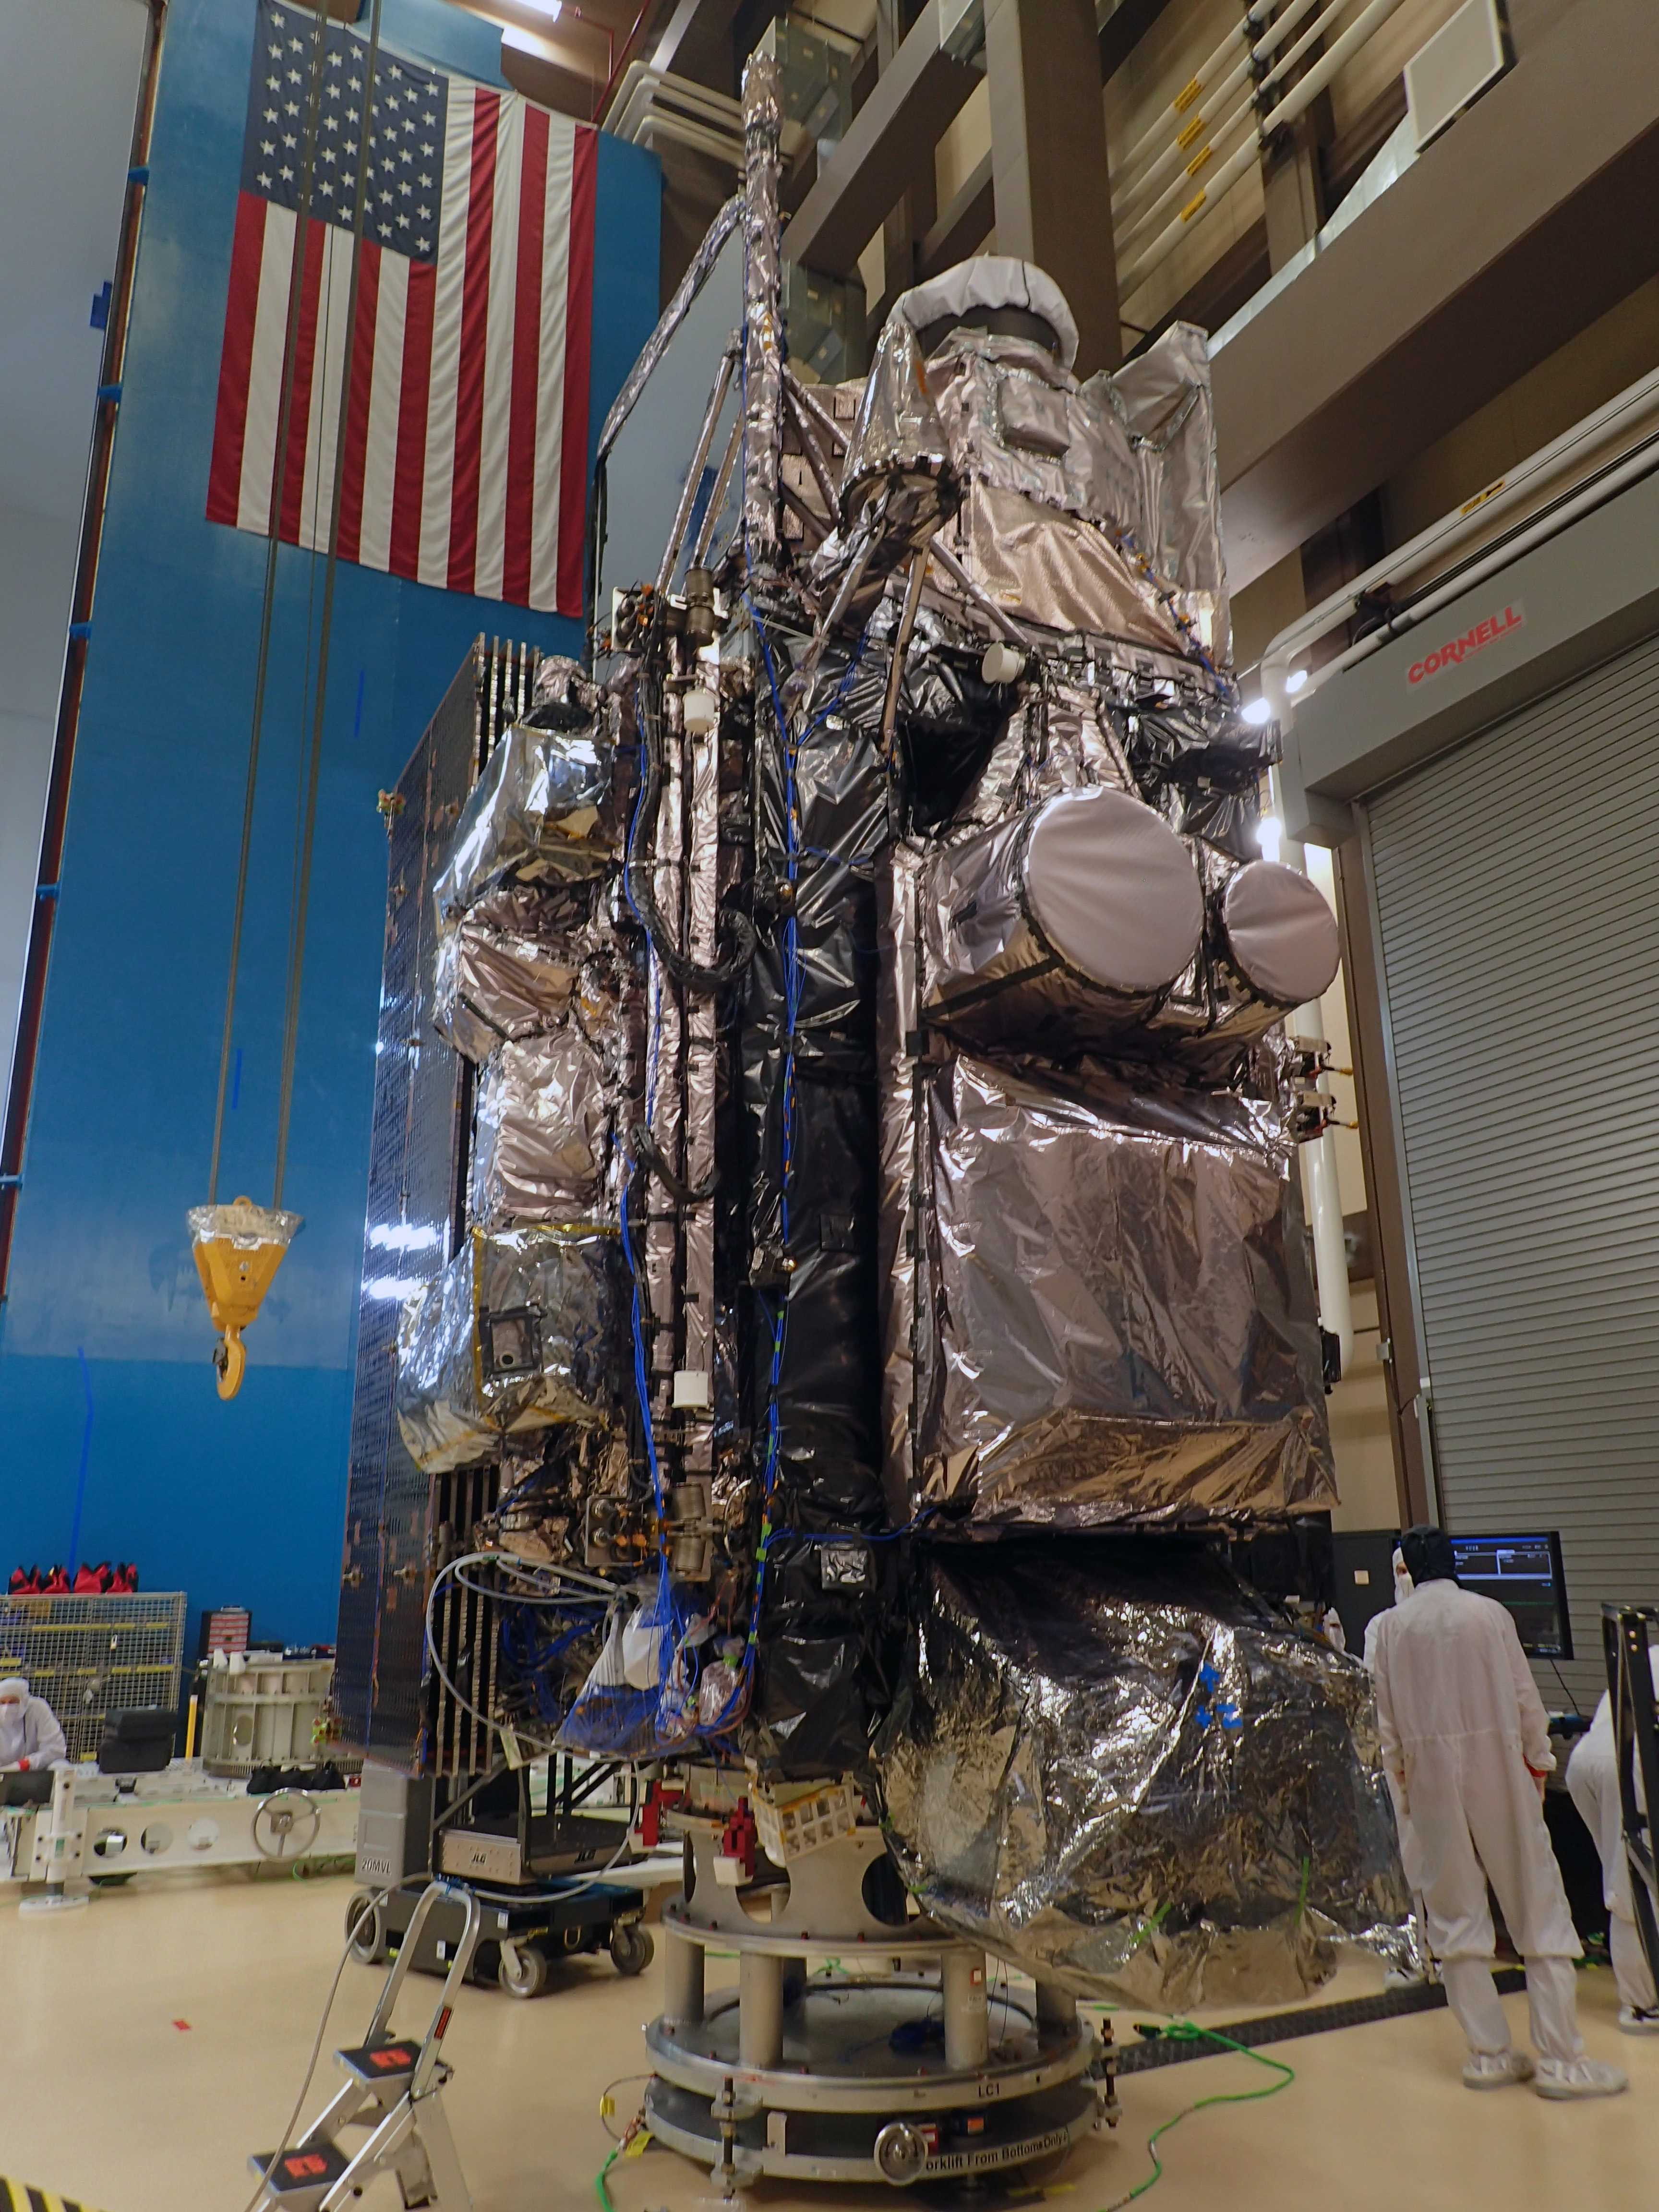 GOES-T after vibration testing